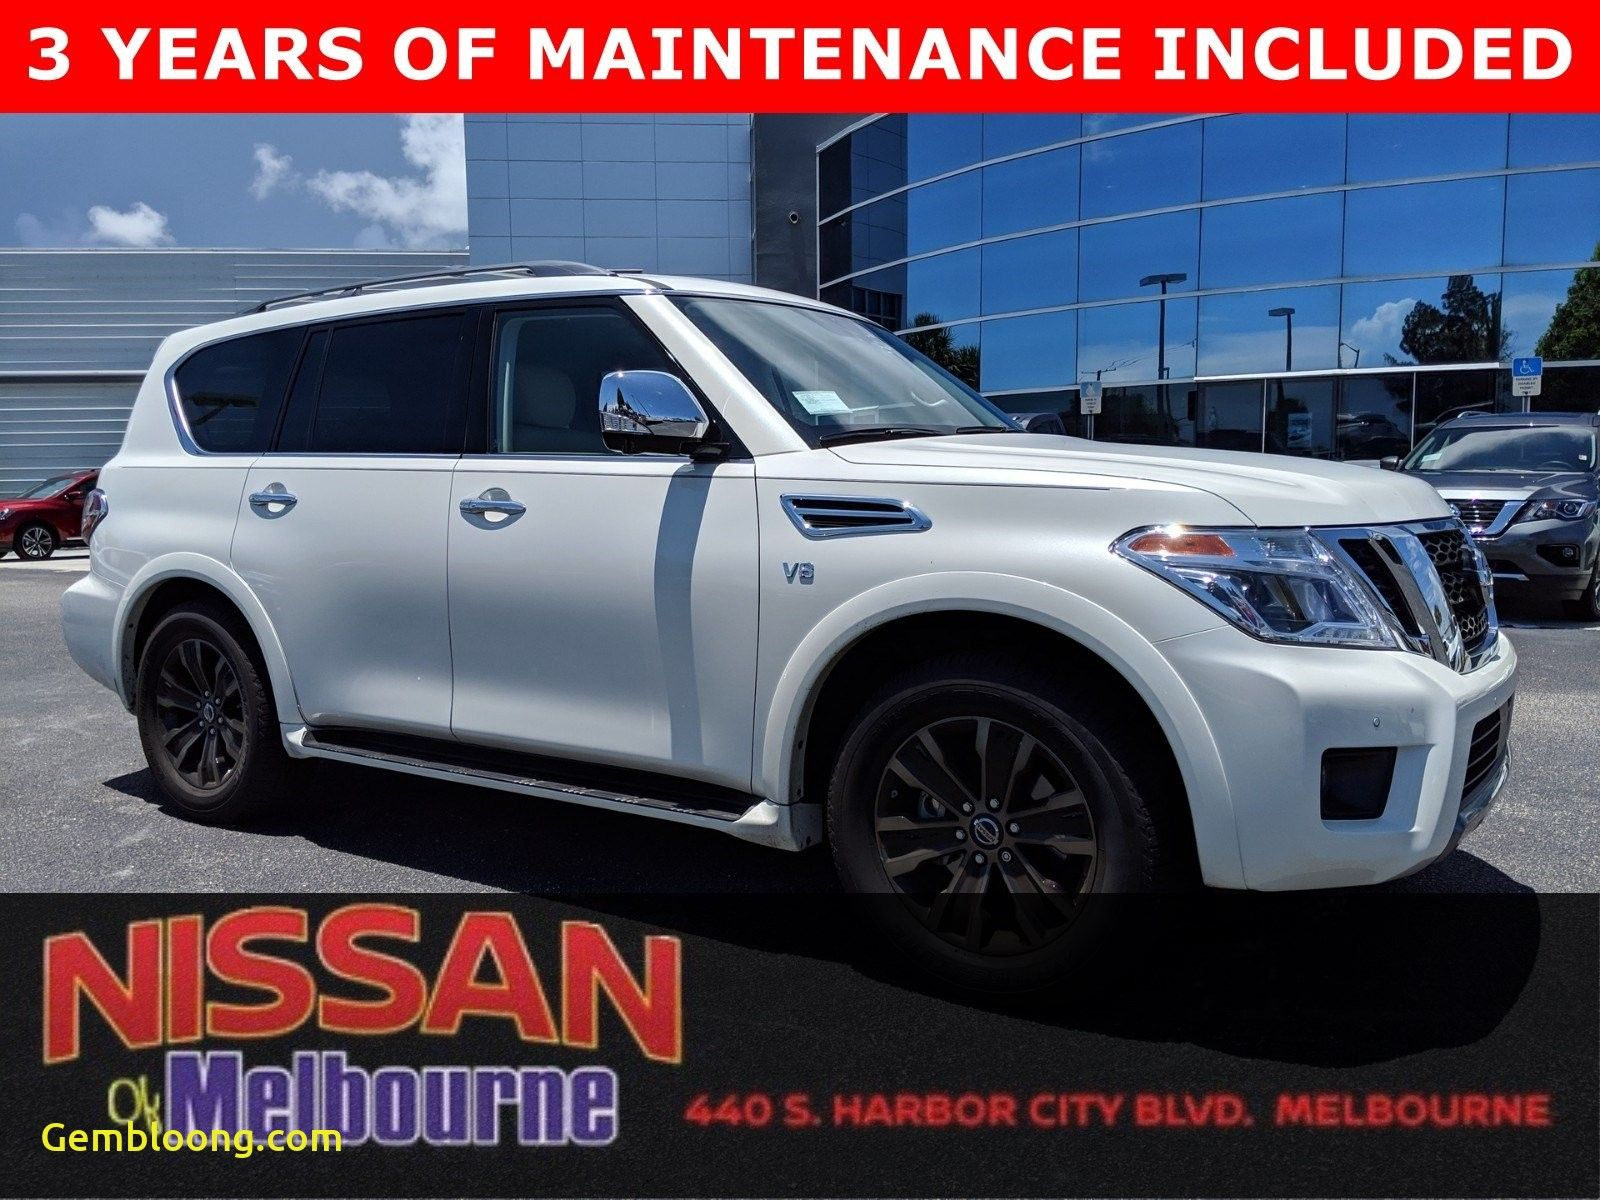 Cars for Sale Under 10000 Melbourne Lovely Nissan Armada